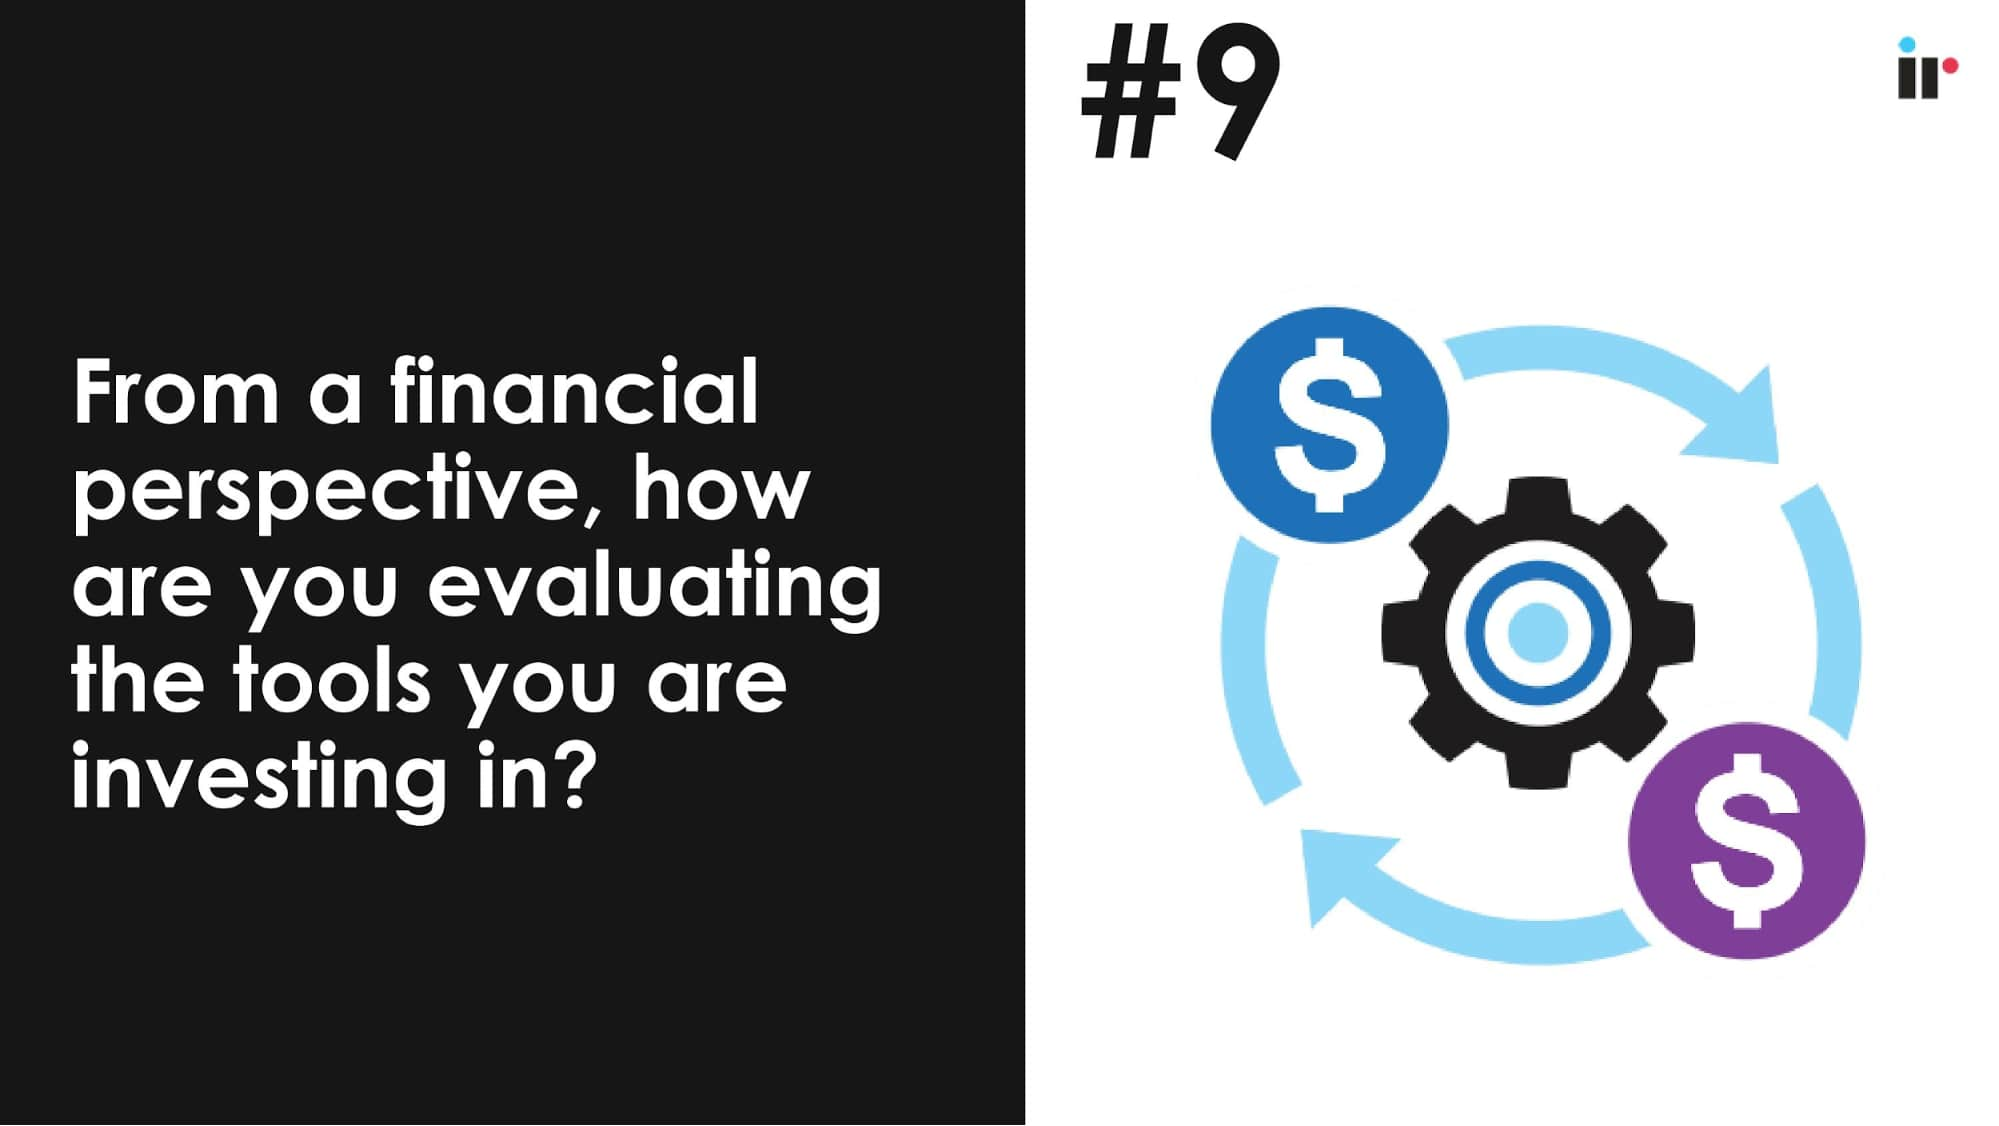 From a financial perspective, how are you evaluating the tools you are investing